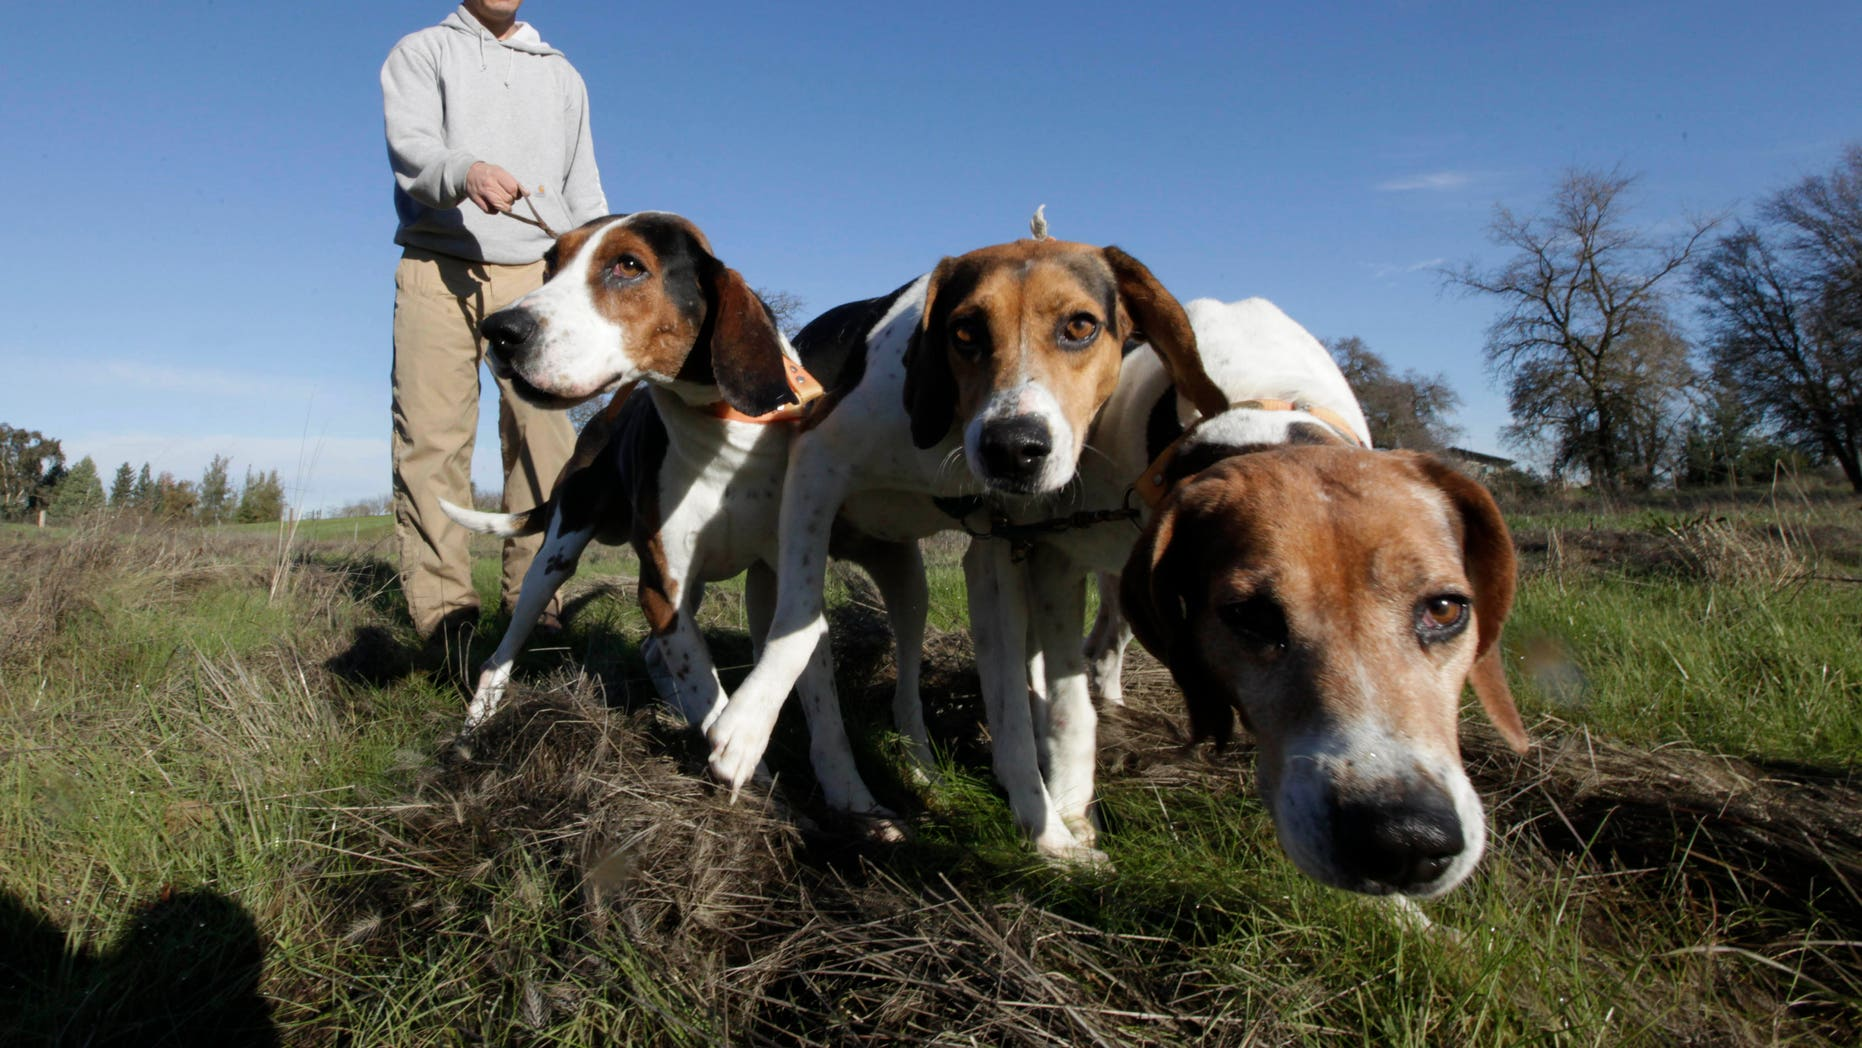 Dec. 18, 2012: In this photo, Josh Brones, president of the California Houndsmen for Conservation, walks his hunting dogs, Dollar, left, Sequoia, center and Tanner right, near his home in Wilton, Calif.